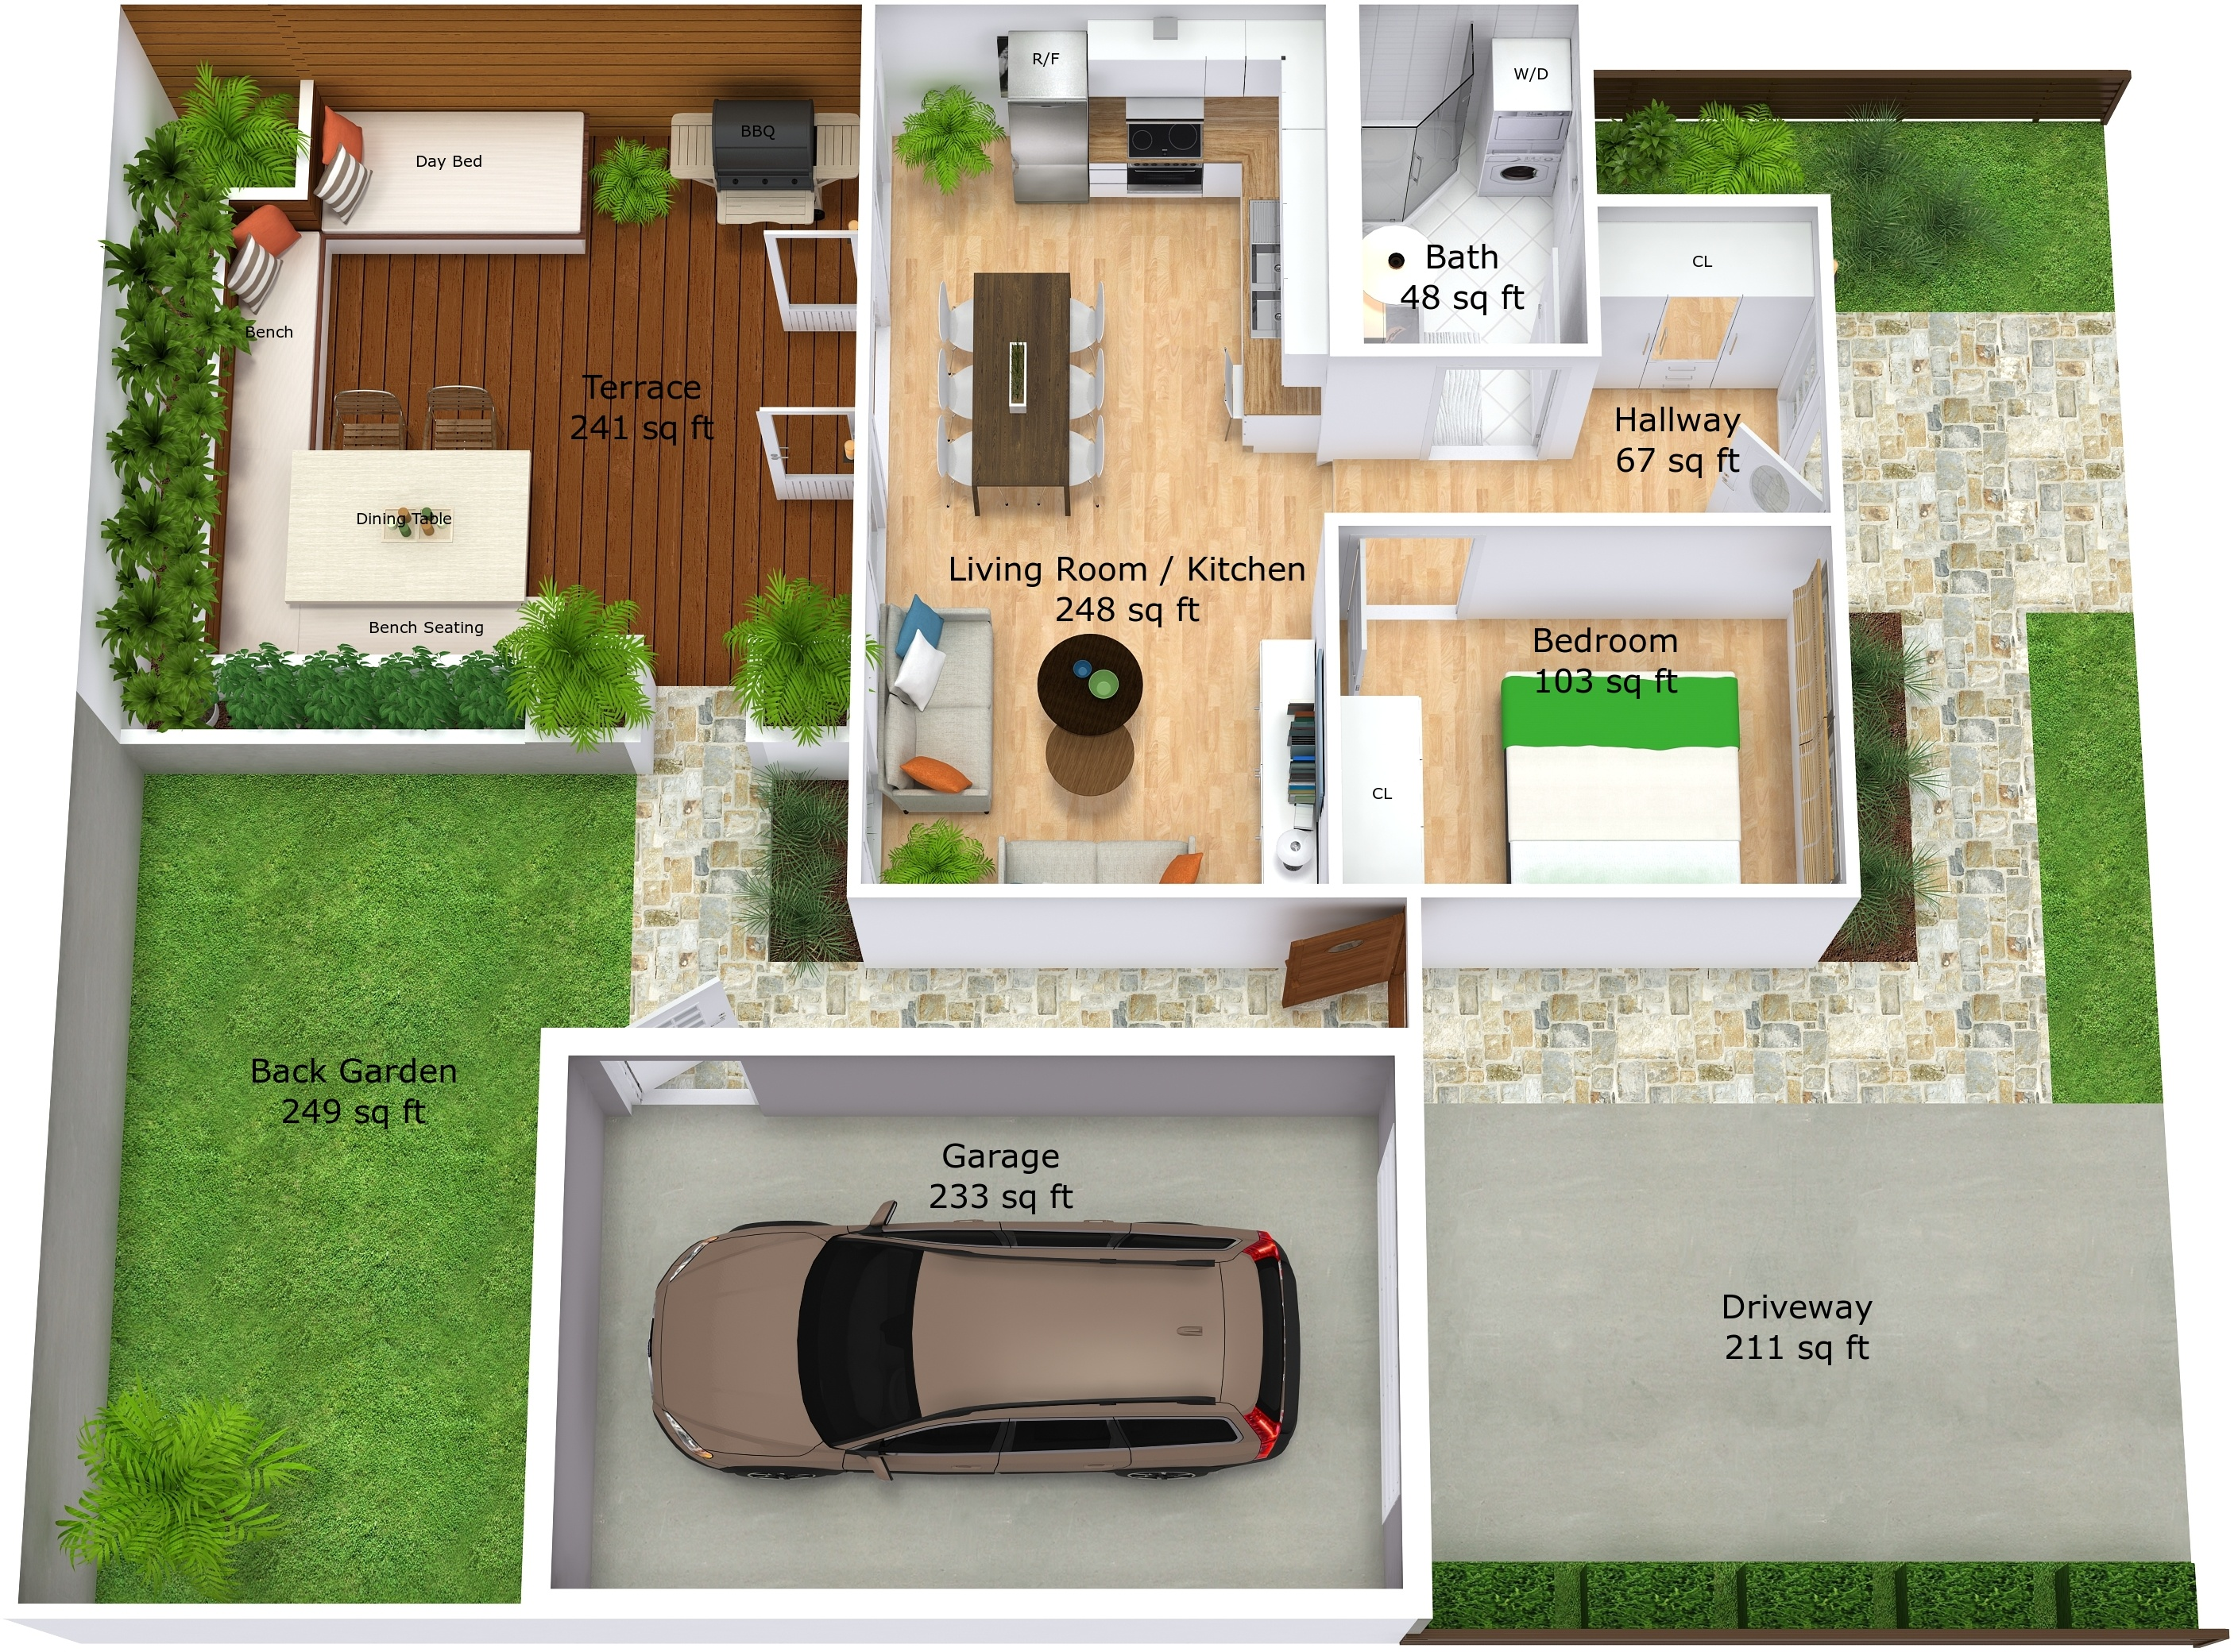 Roomsketcher Outdoor Create A 3d Site Plan (web) – Roomsketcher Help Center